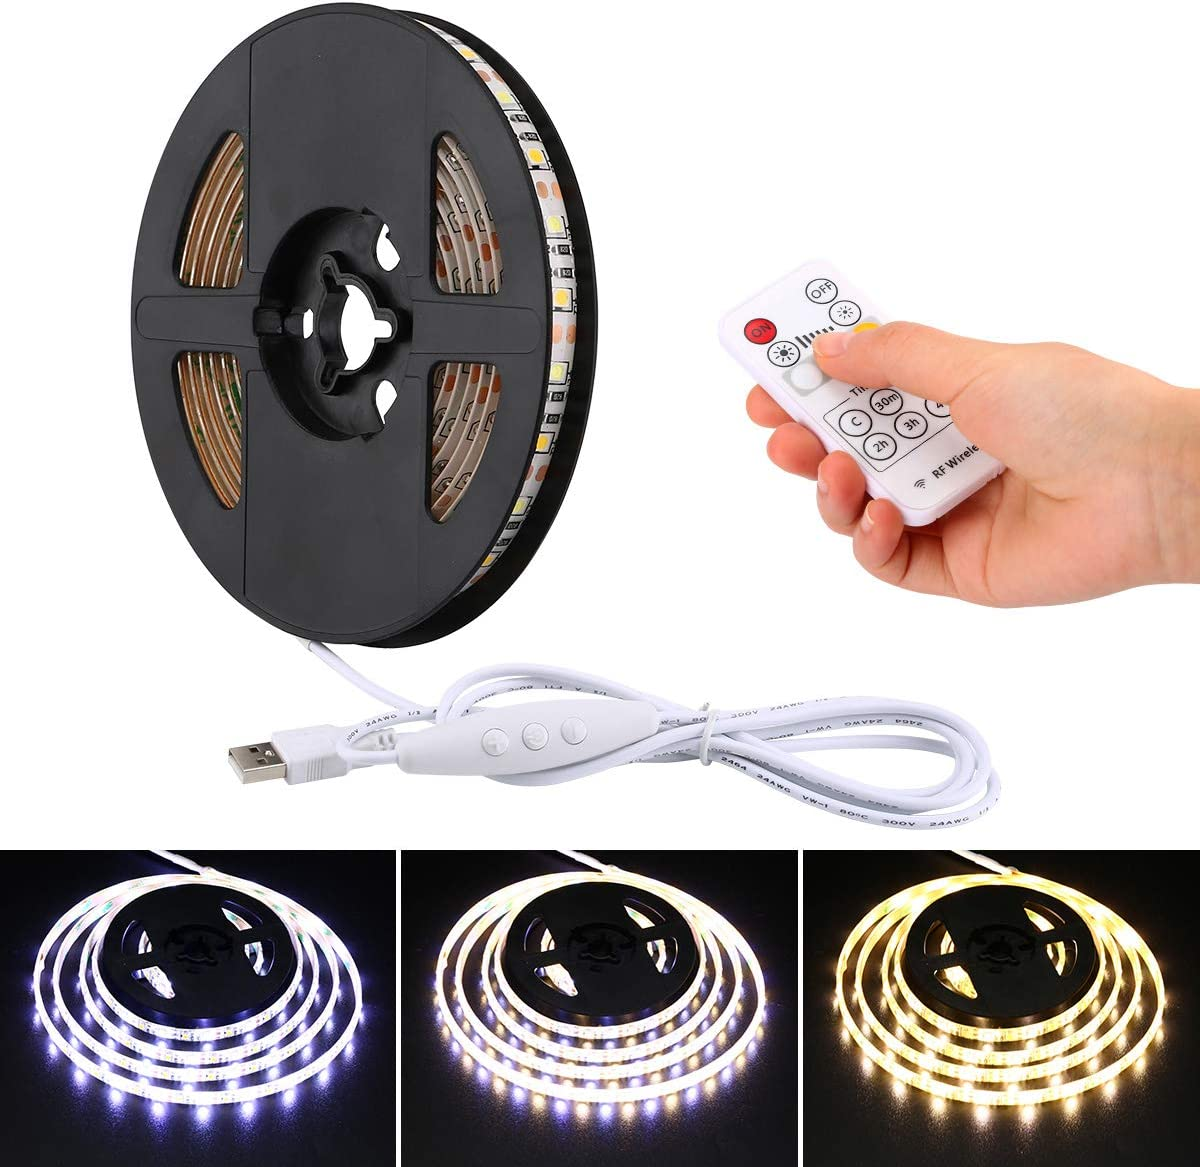 YDZM LED Strip Lights USB Powered Warm White Cool White Led Light Strip with RF Remote Control6.56ft 2M IP65 Waterproof Led Tape Light for Homes, Kitchen Cabinet Lights